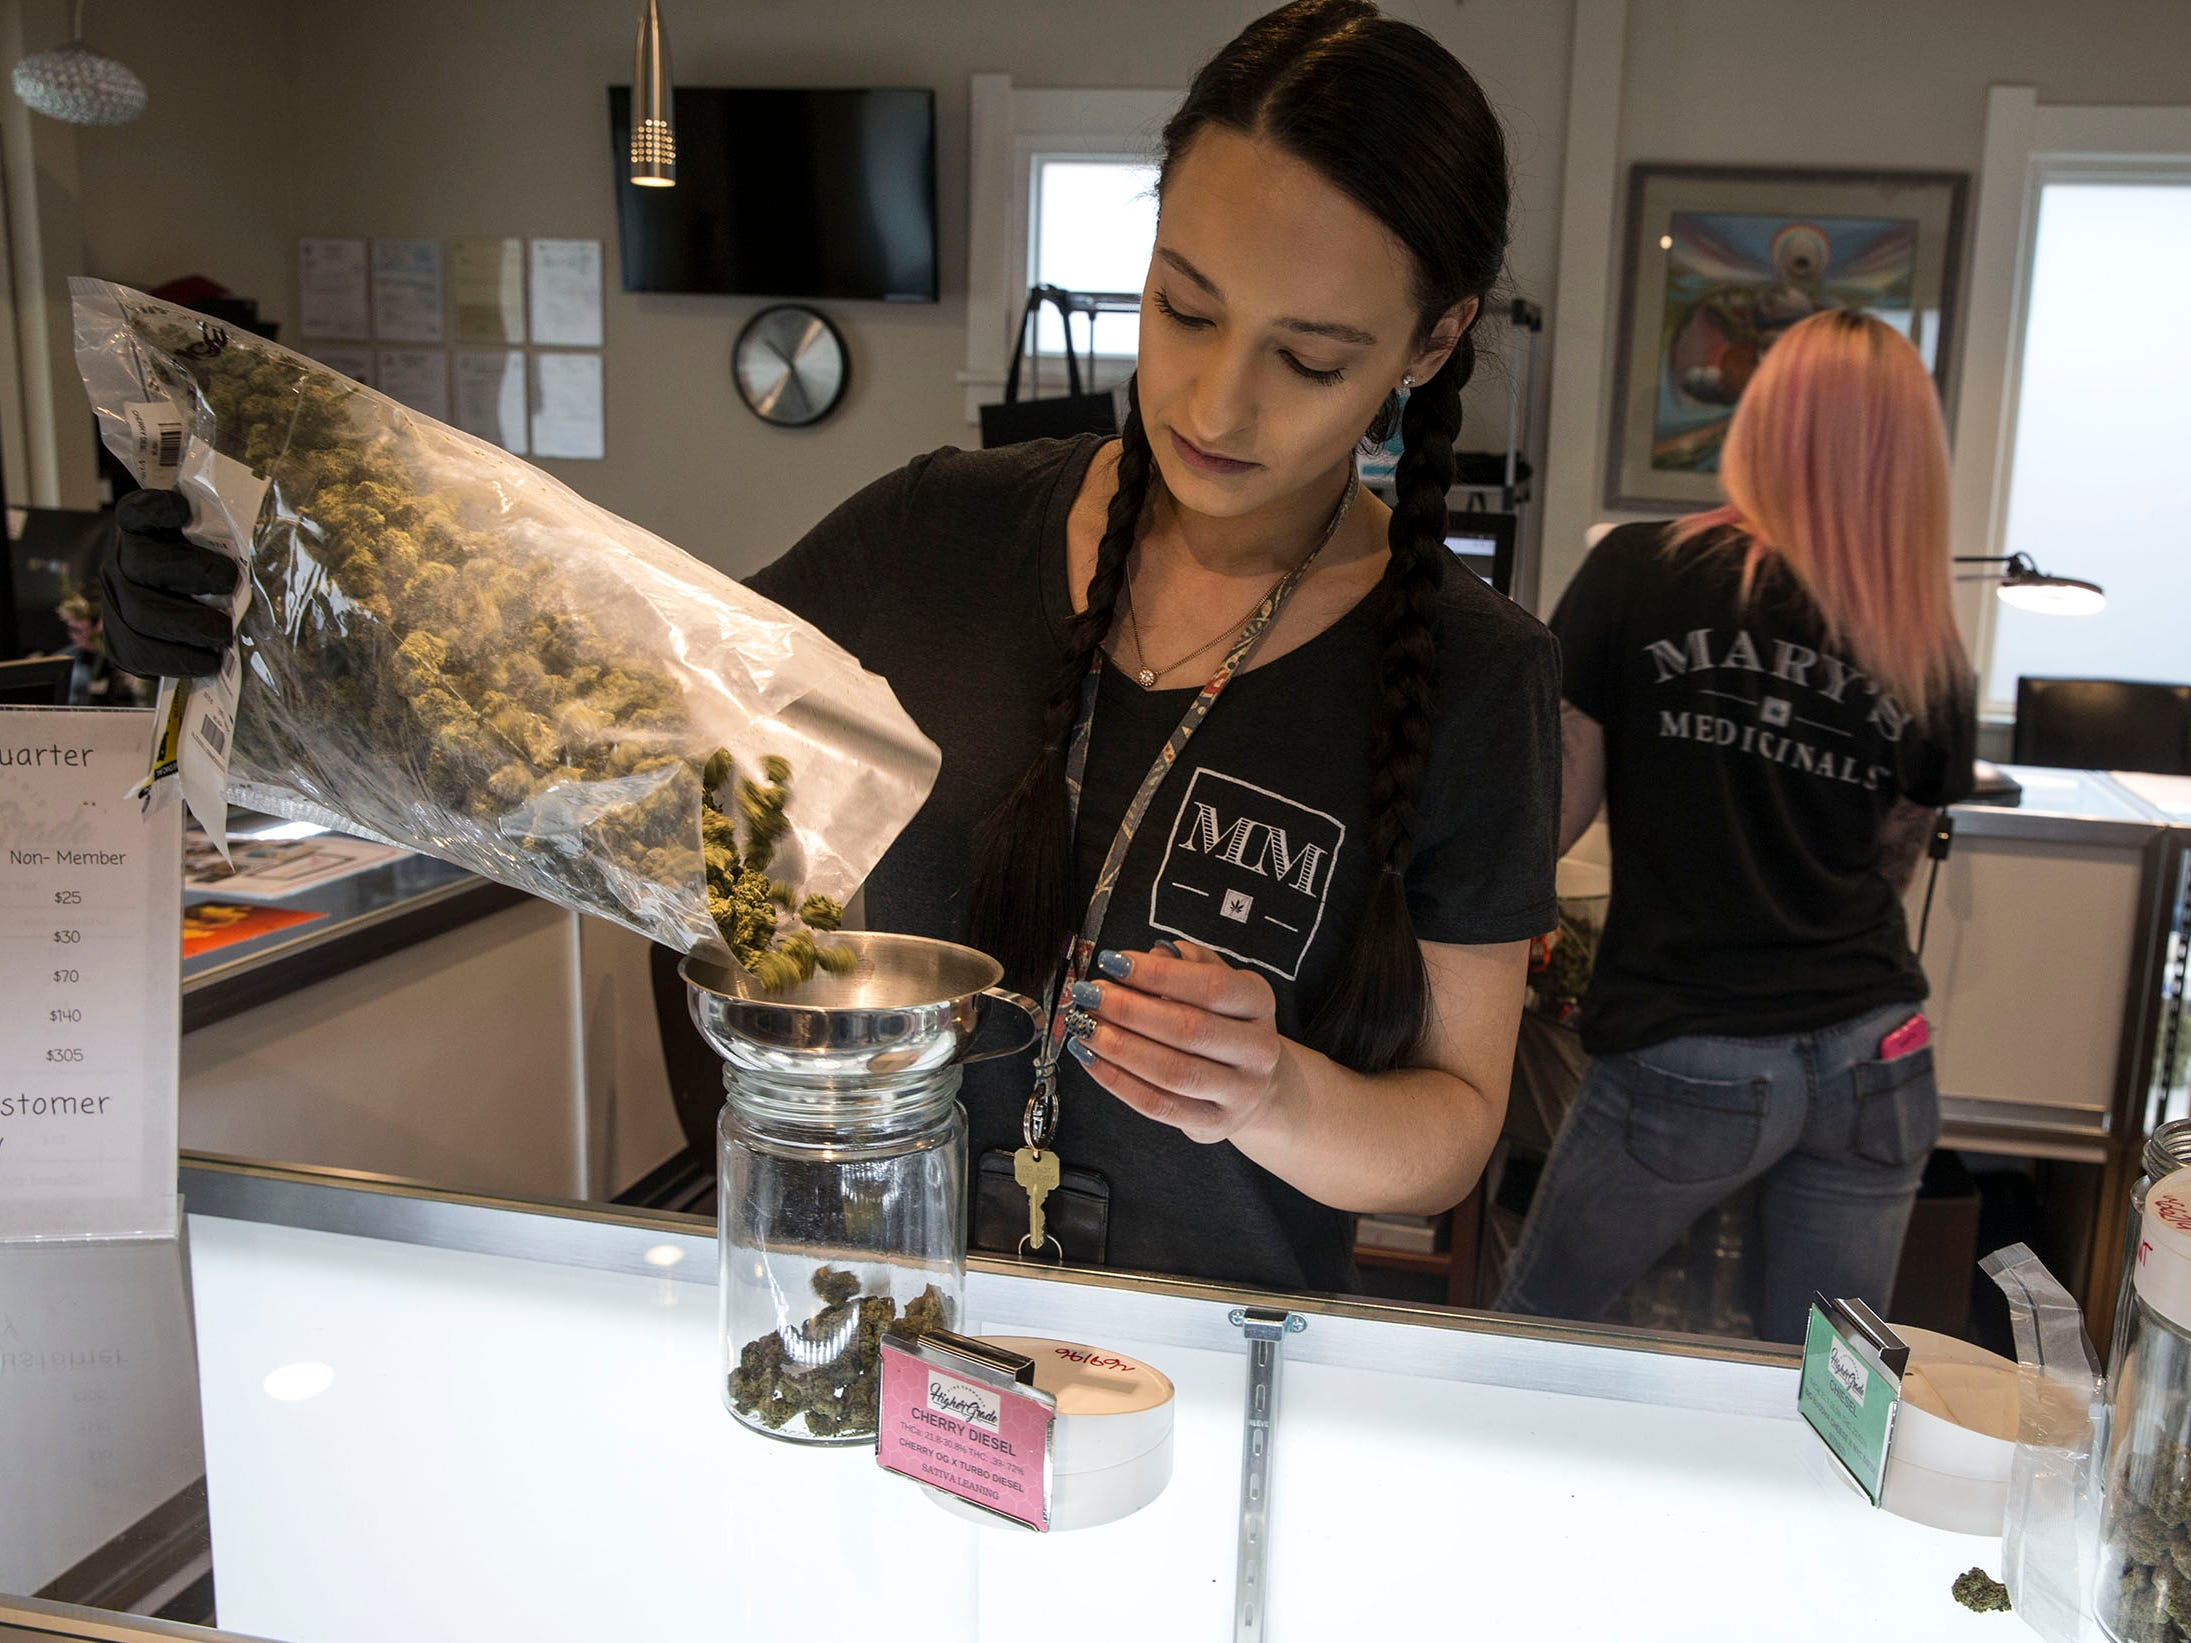 Raven Guillmette, store manager, measures out a strain of marijuana called Cherry Diesel. Higher Grade dispensary offers fine cannabis for medicinal purposes.  Denver, CO on Friday, April 13, 2018